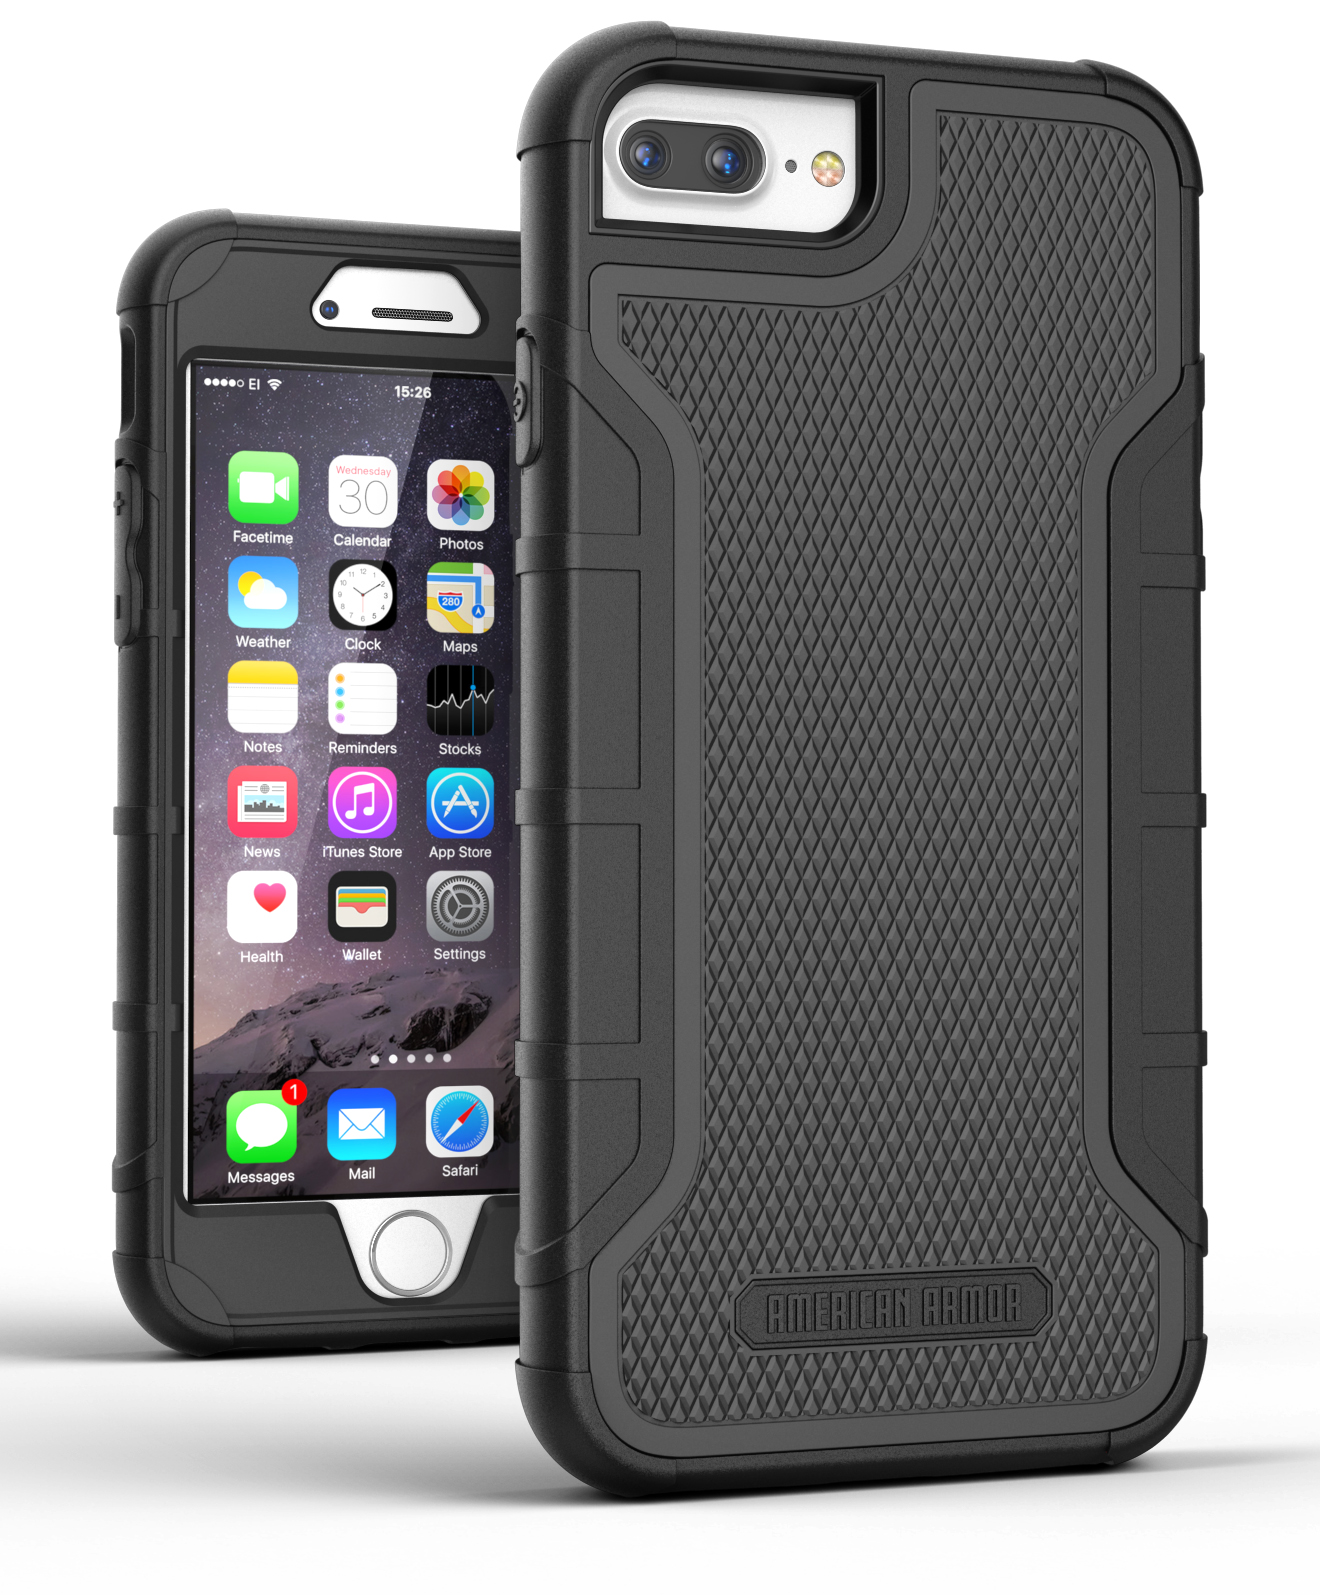 brand new e8a54 f2ee4 Apple iPhone 8 Plus Tough Case w/ Built in Screen Protector, (Heavy Duty)  Rugged Hybrid Case [Military Grade Protection]